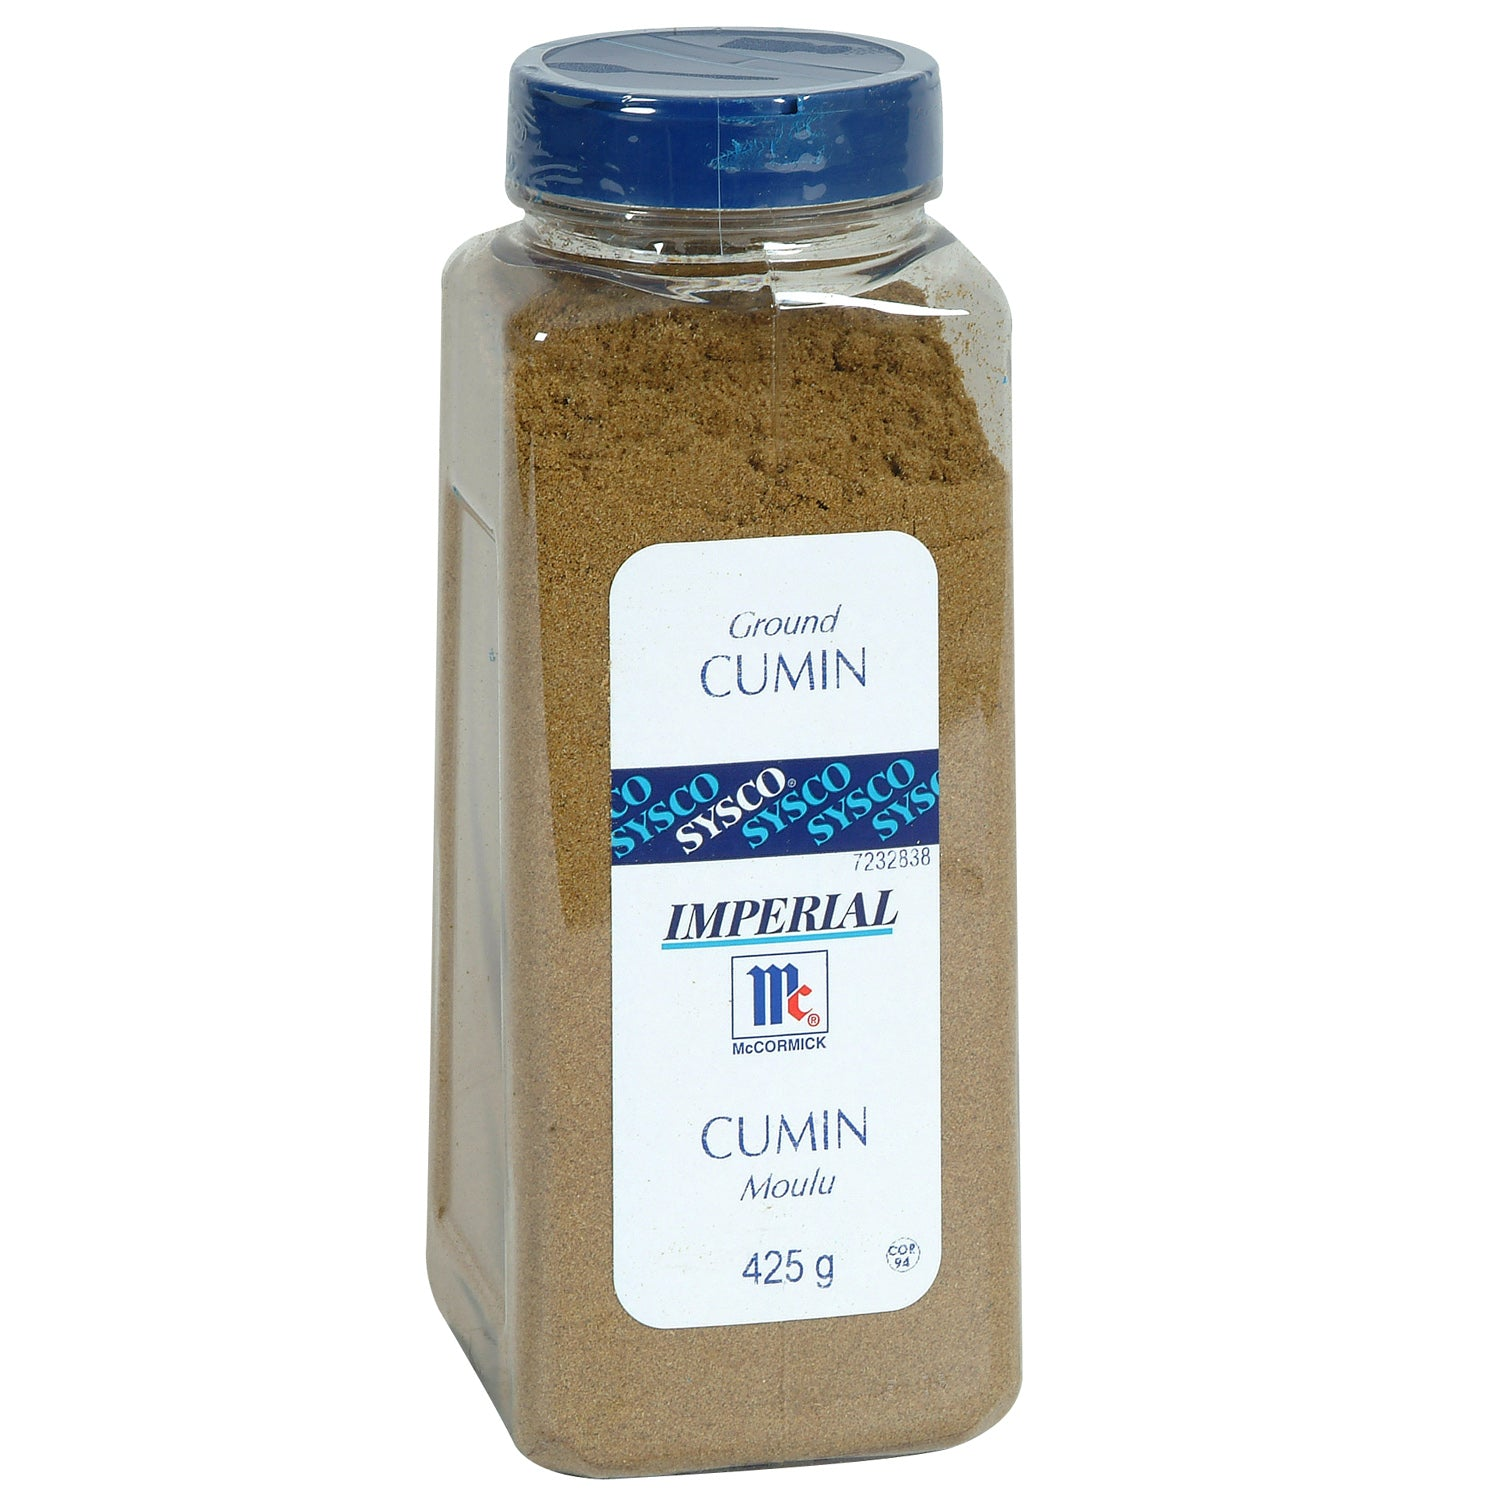 Sysco Imperial Ground Cumin 425 g - 1 Pack [$14.49/each]